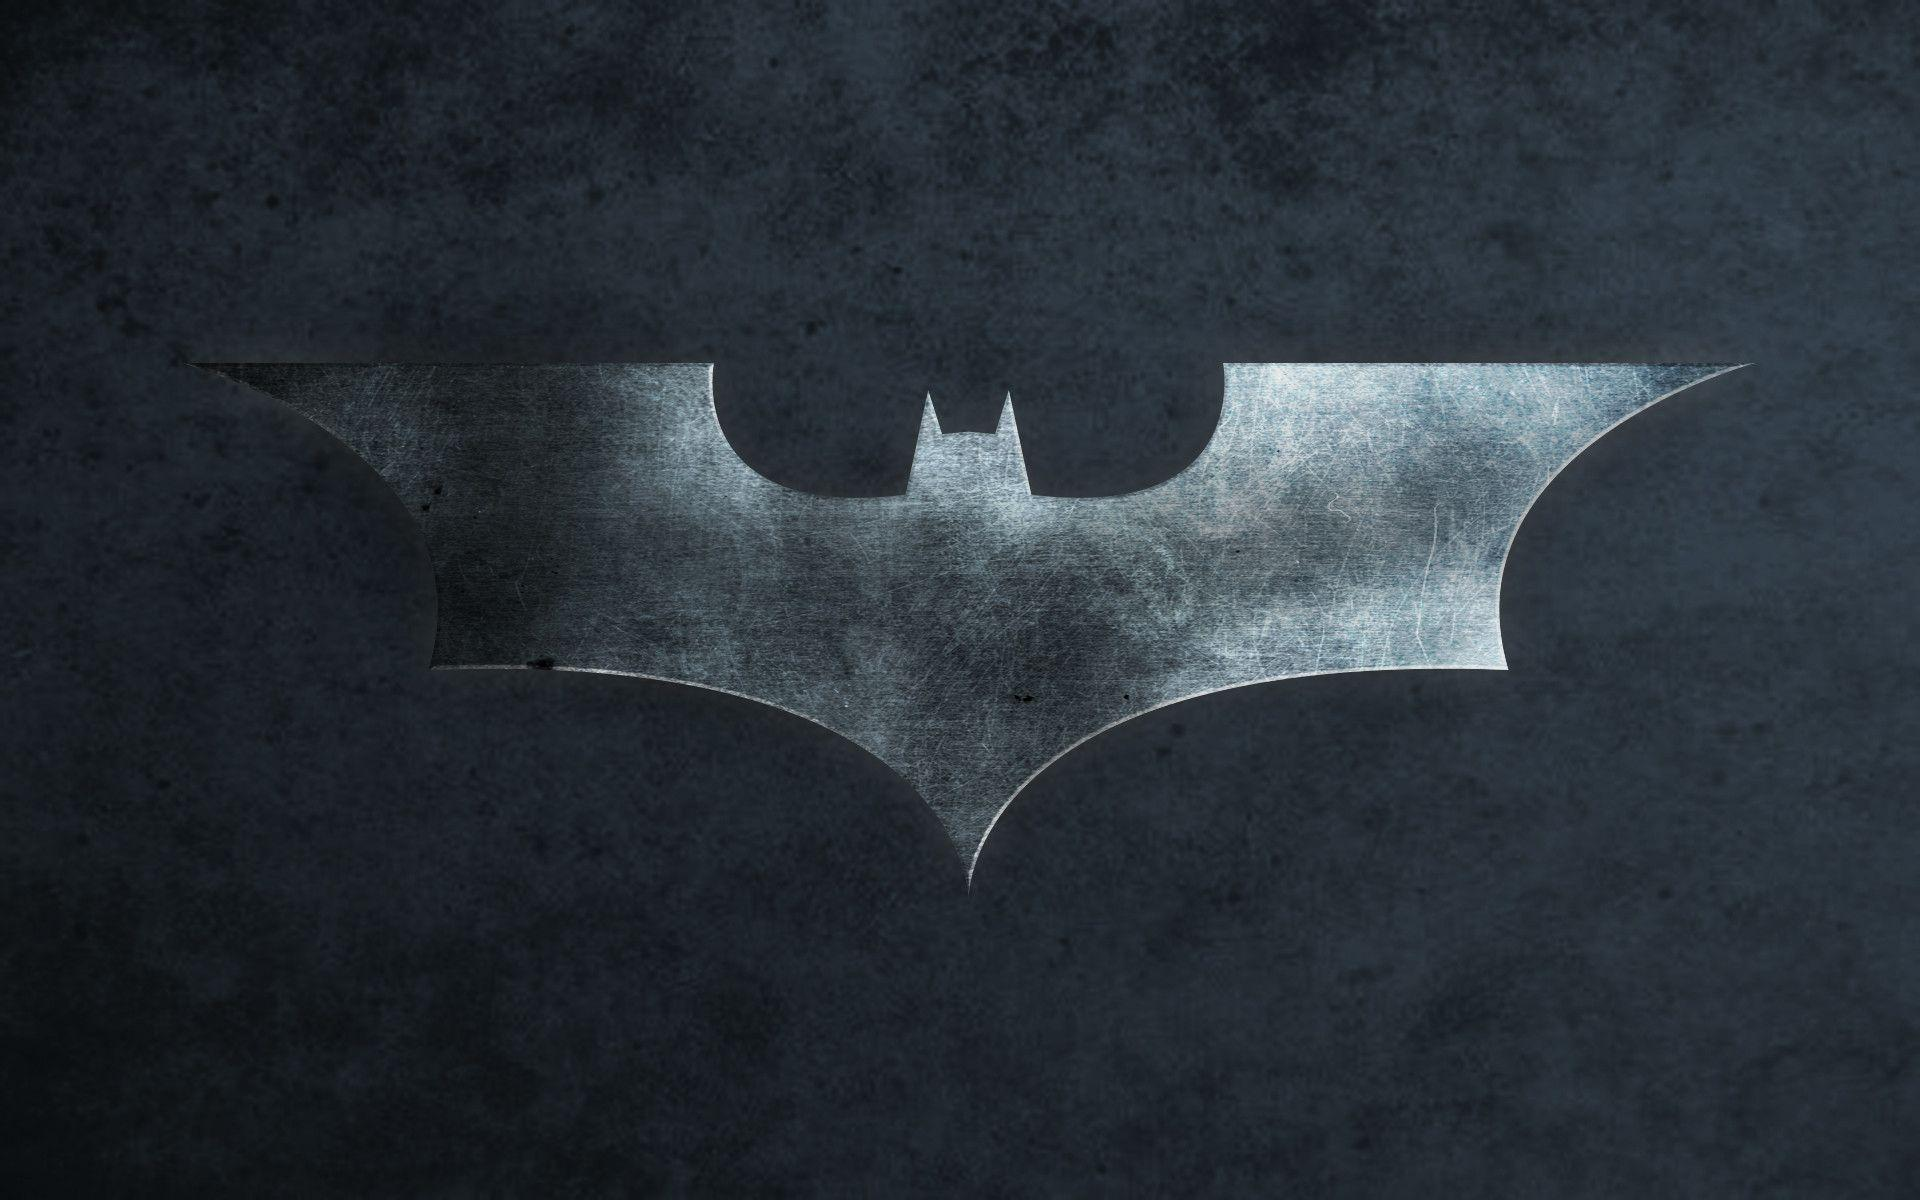 Dark Knight Logo Wallpapers Hd  Wallpaper Cave Dark Knight Logo Wallpapers  Wallpaper Cave  Images Wallpapers  Science And Technology Essays also Buy An Assignment Online  We Take Your Online Class